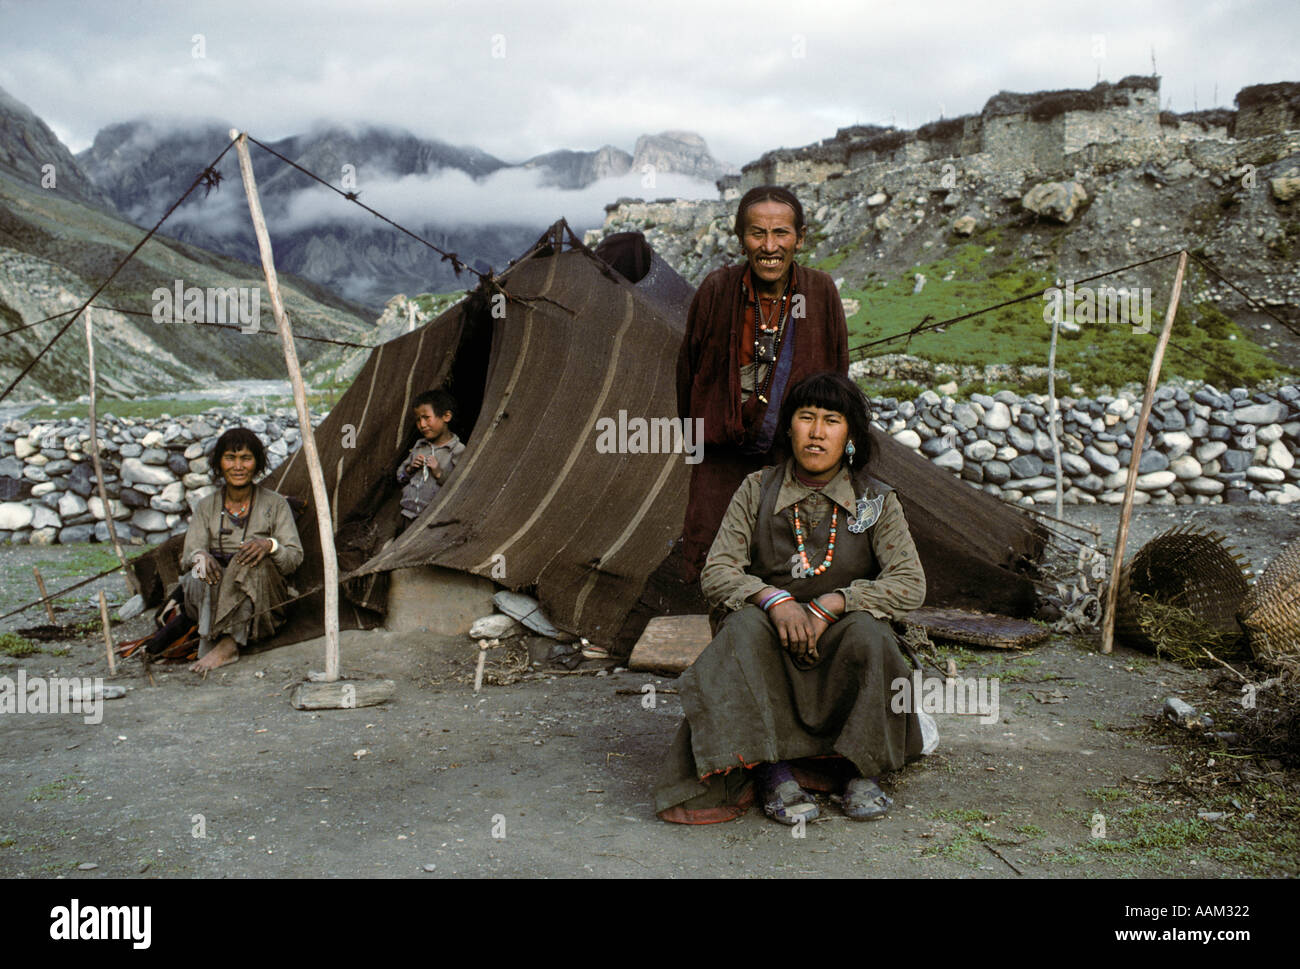 DOLPO FAMILY of the Amchi Lama with their TENT HOUSE in front of CHHARKA VILLAGE DOLPO NEPAL  sc 1 st  Alamy & DOLPO FAMILY of the Amchi Lama with their TENT HOUSE in front of ...